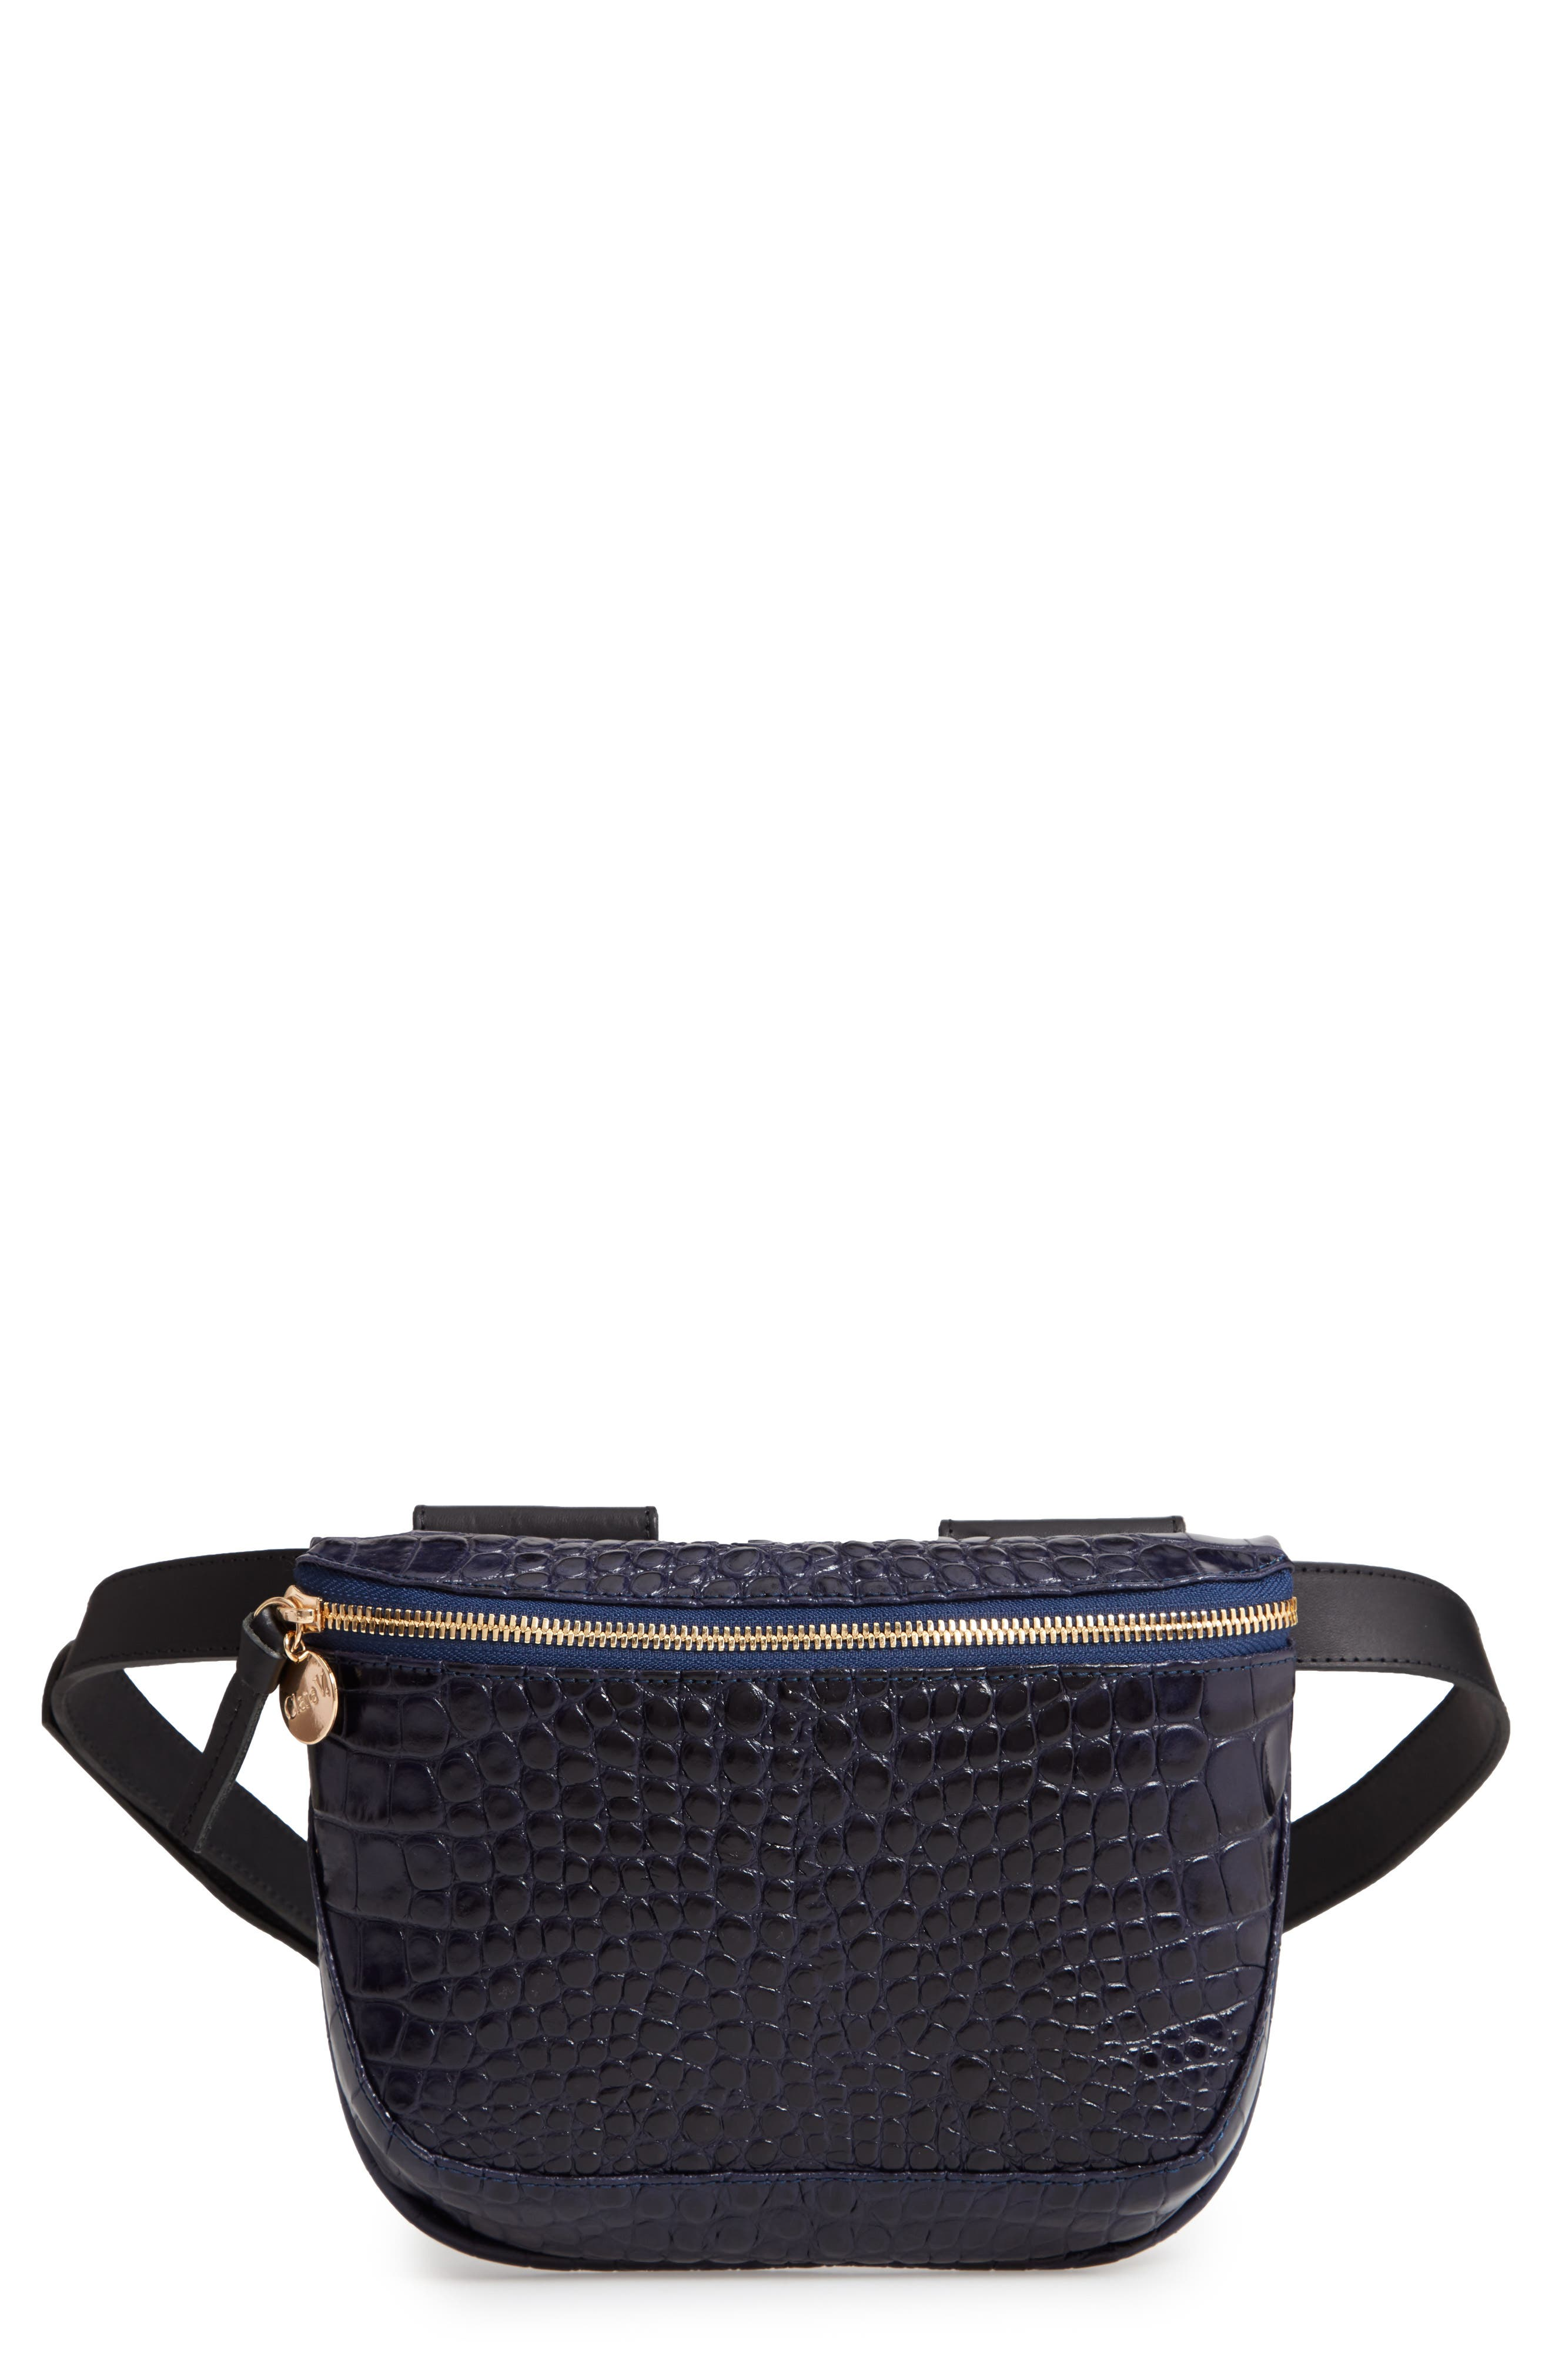 CLARE V Croc Embossed Leather Fanny Pack - Black in Midnight Croco